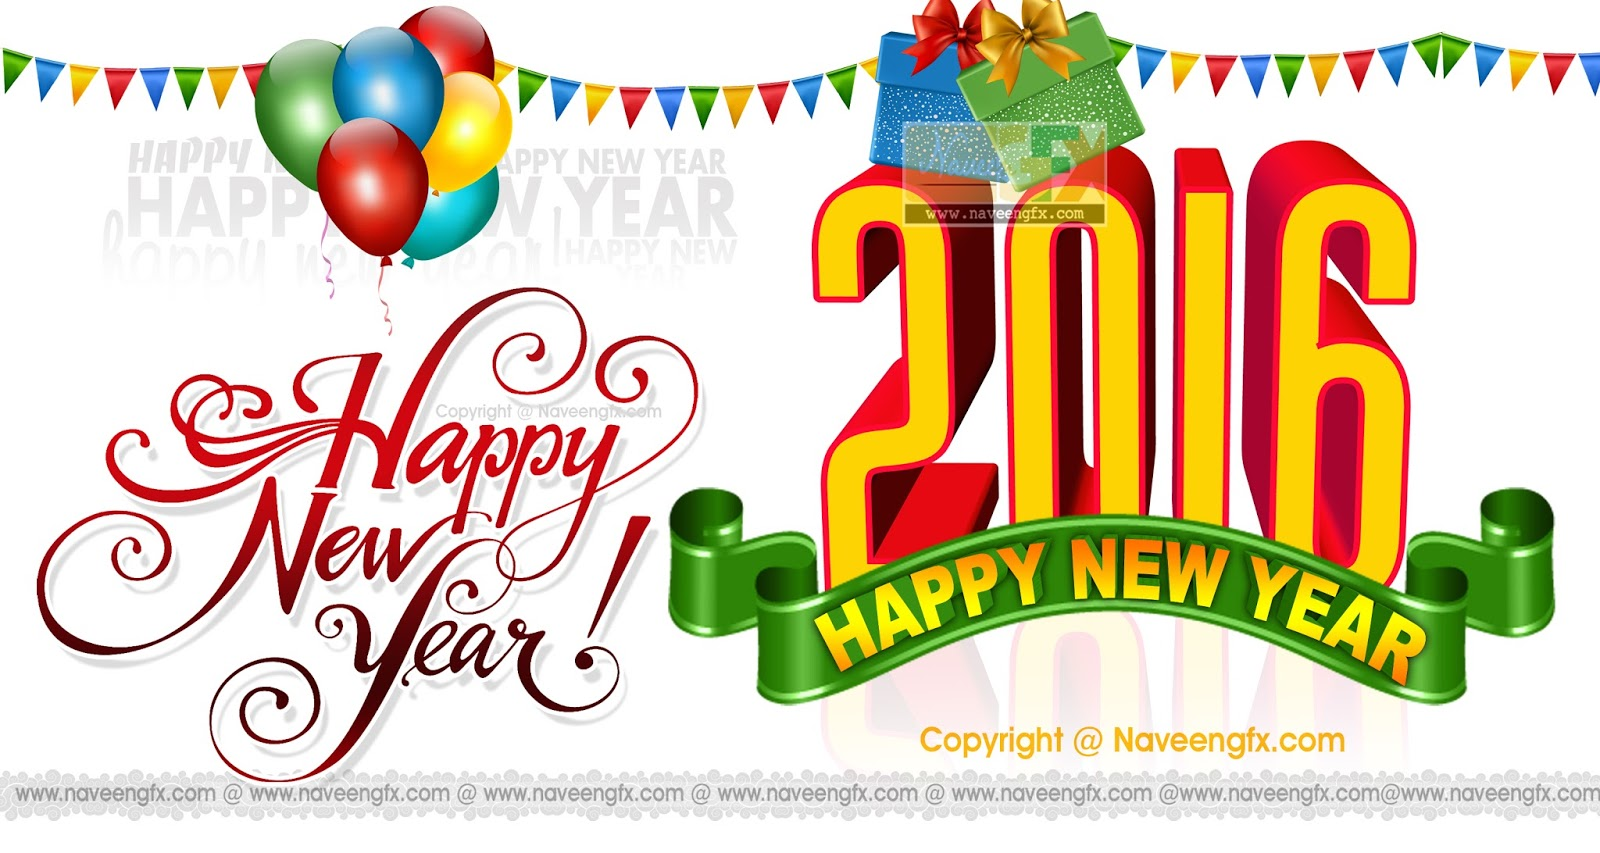 Wish you happy new year 2016 hd picture quotes and greetings naveengfx 2016 happy new year 3d wishe and greetings hd images for desktop m4hsunfo